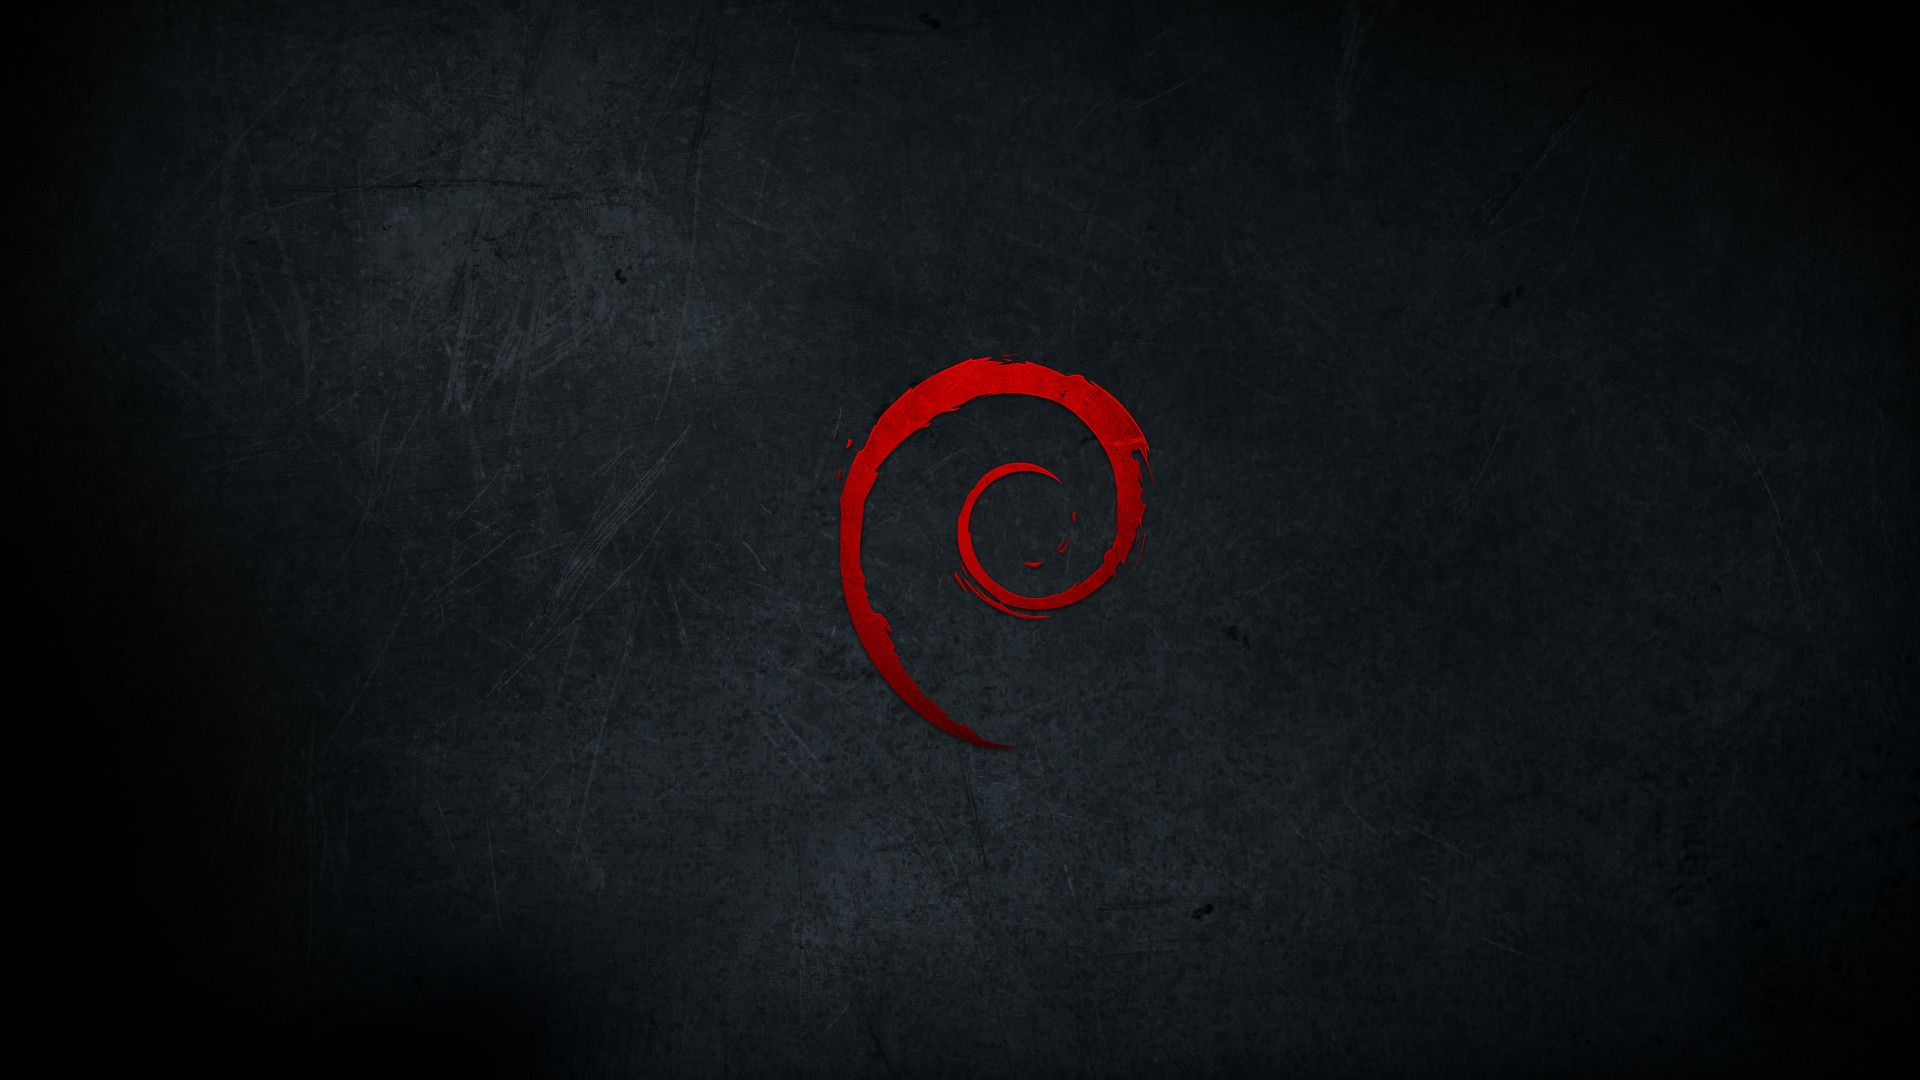 Res: 1920x1080, Debian Metal Wallpaper HD by malkowitch Debian Metal Wallpaper HD by  malkowitch